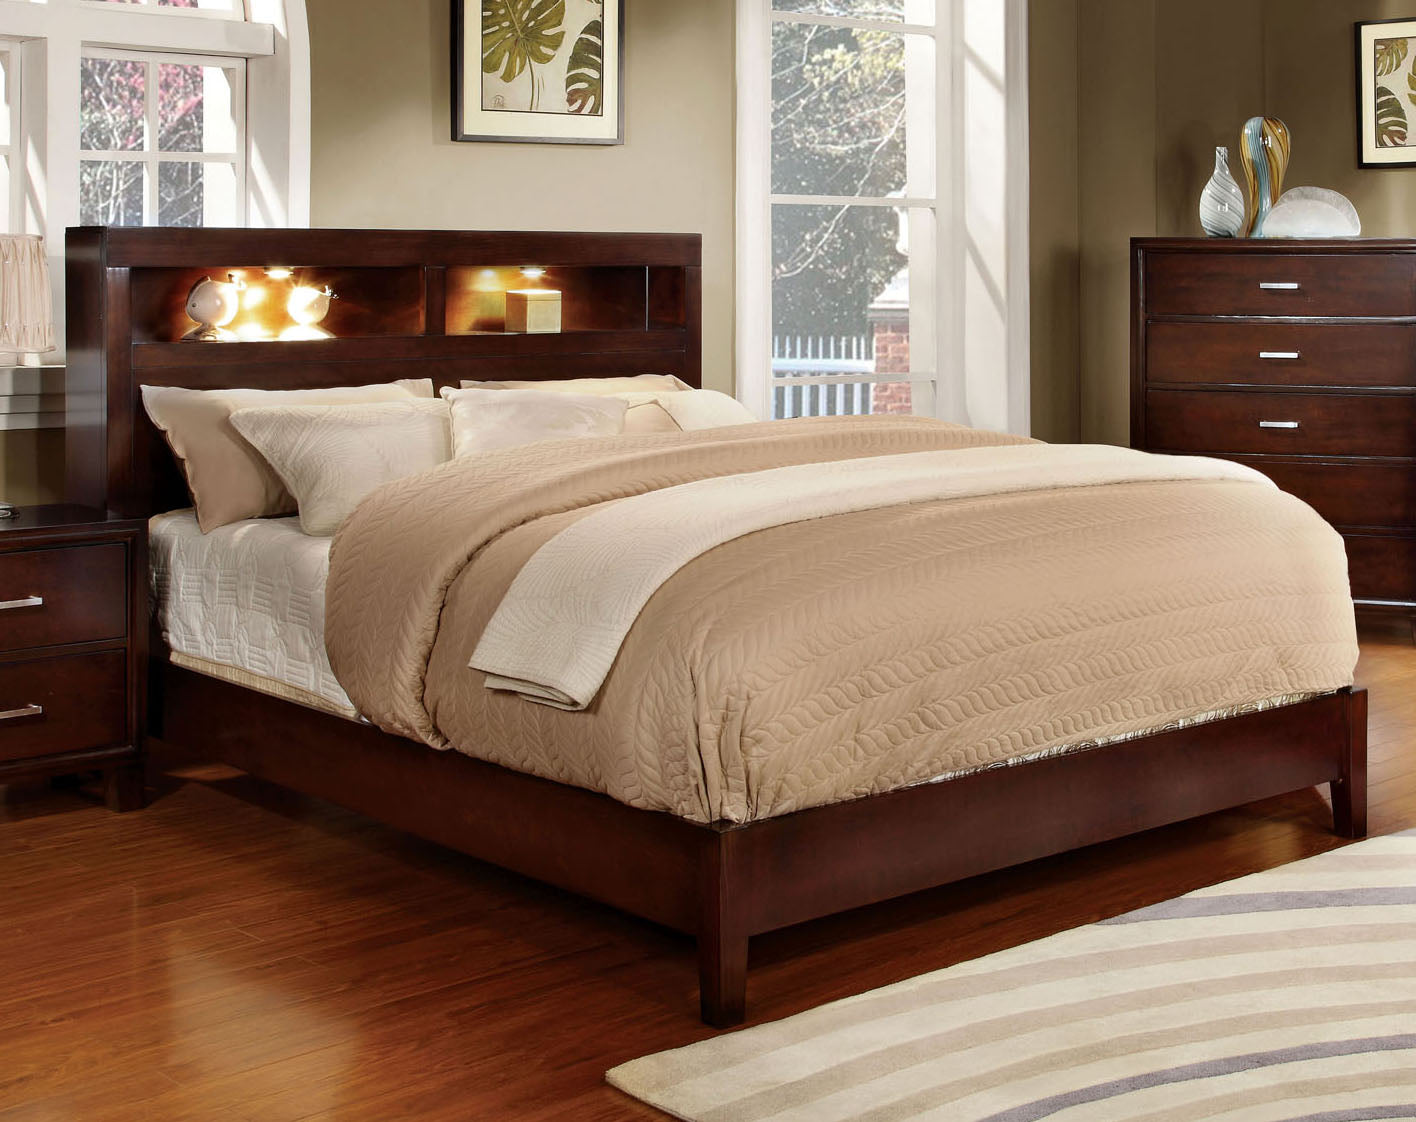 Gerico I CM7290CH-CK Contemporary Brown Cherry King Platform Bed